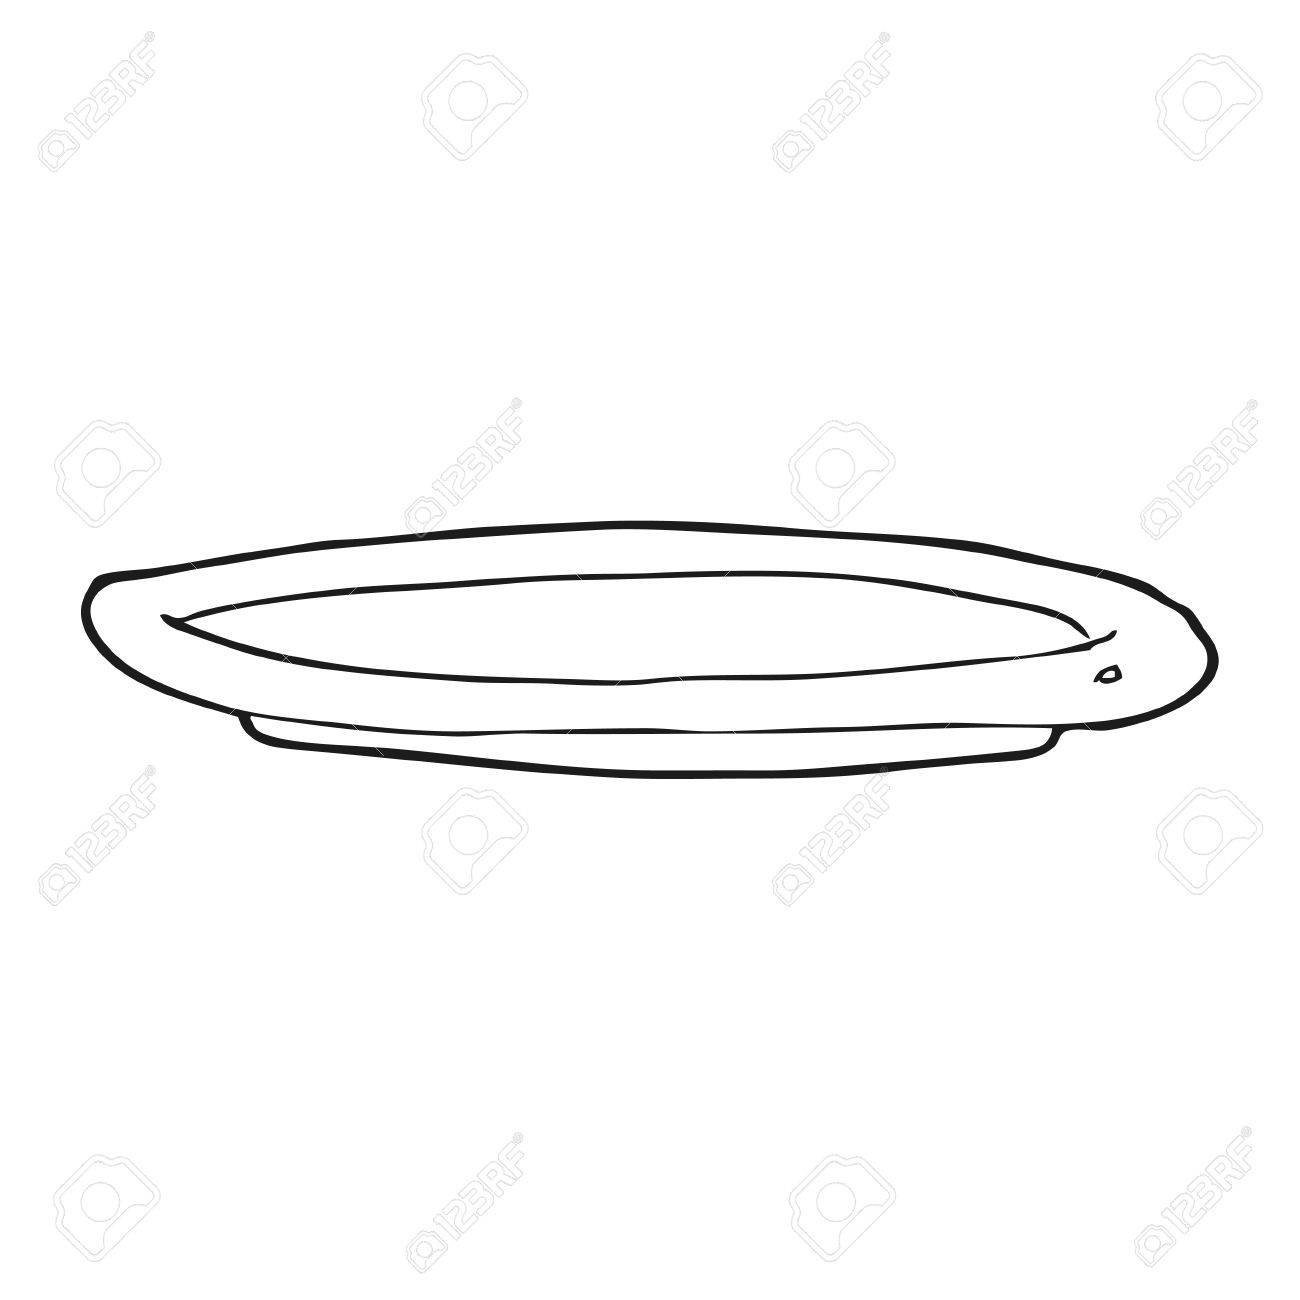 Freehand Drawn Black And White Cartoon Empty Plate Royalty Free